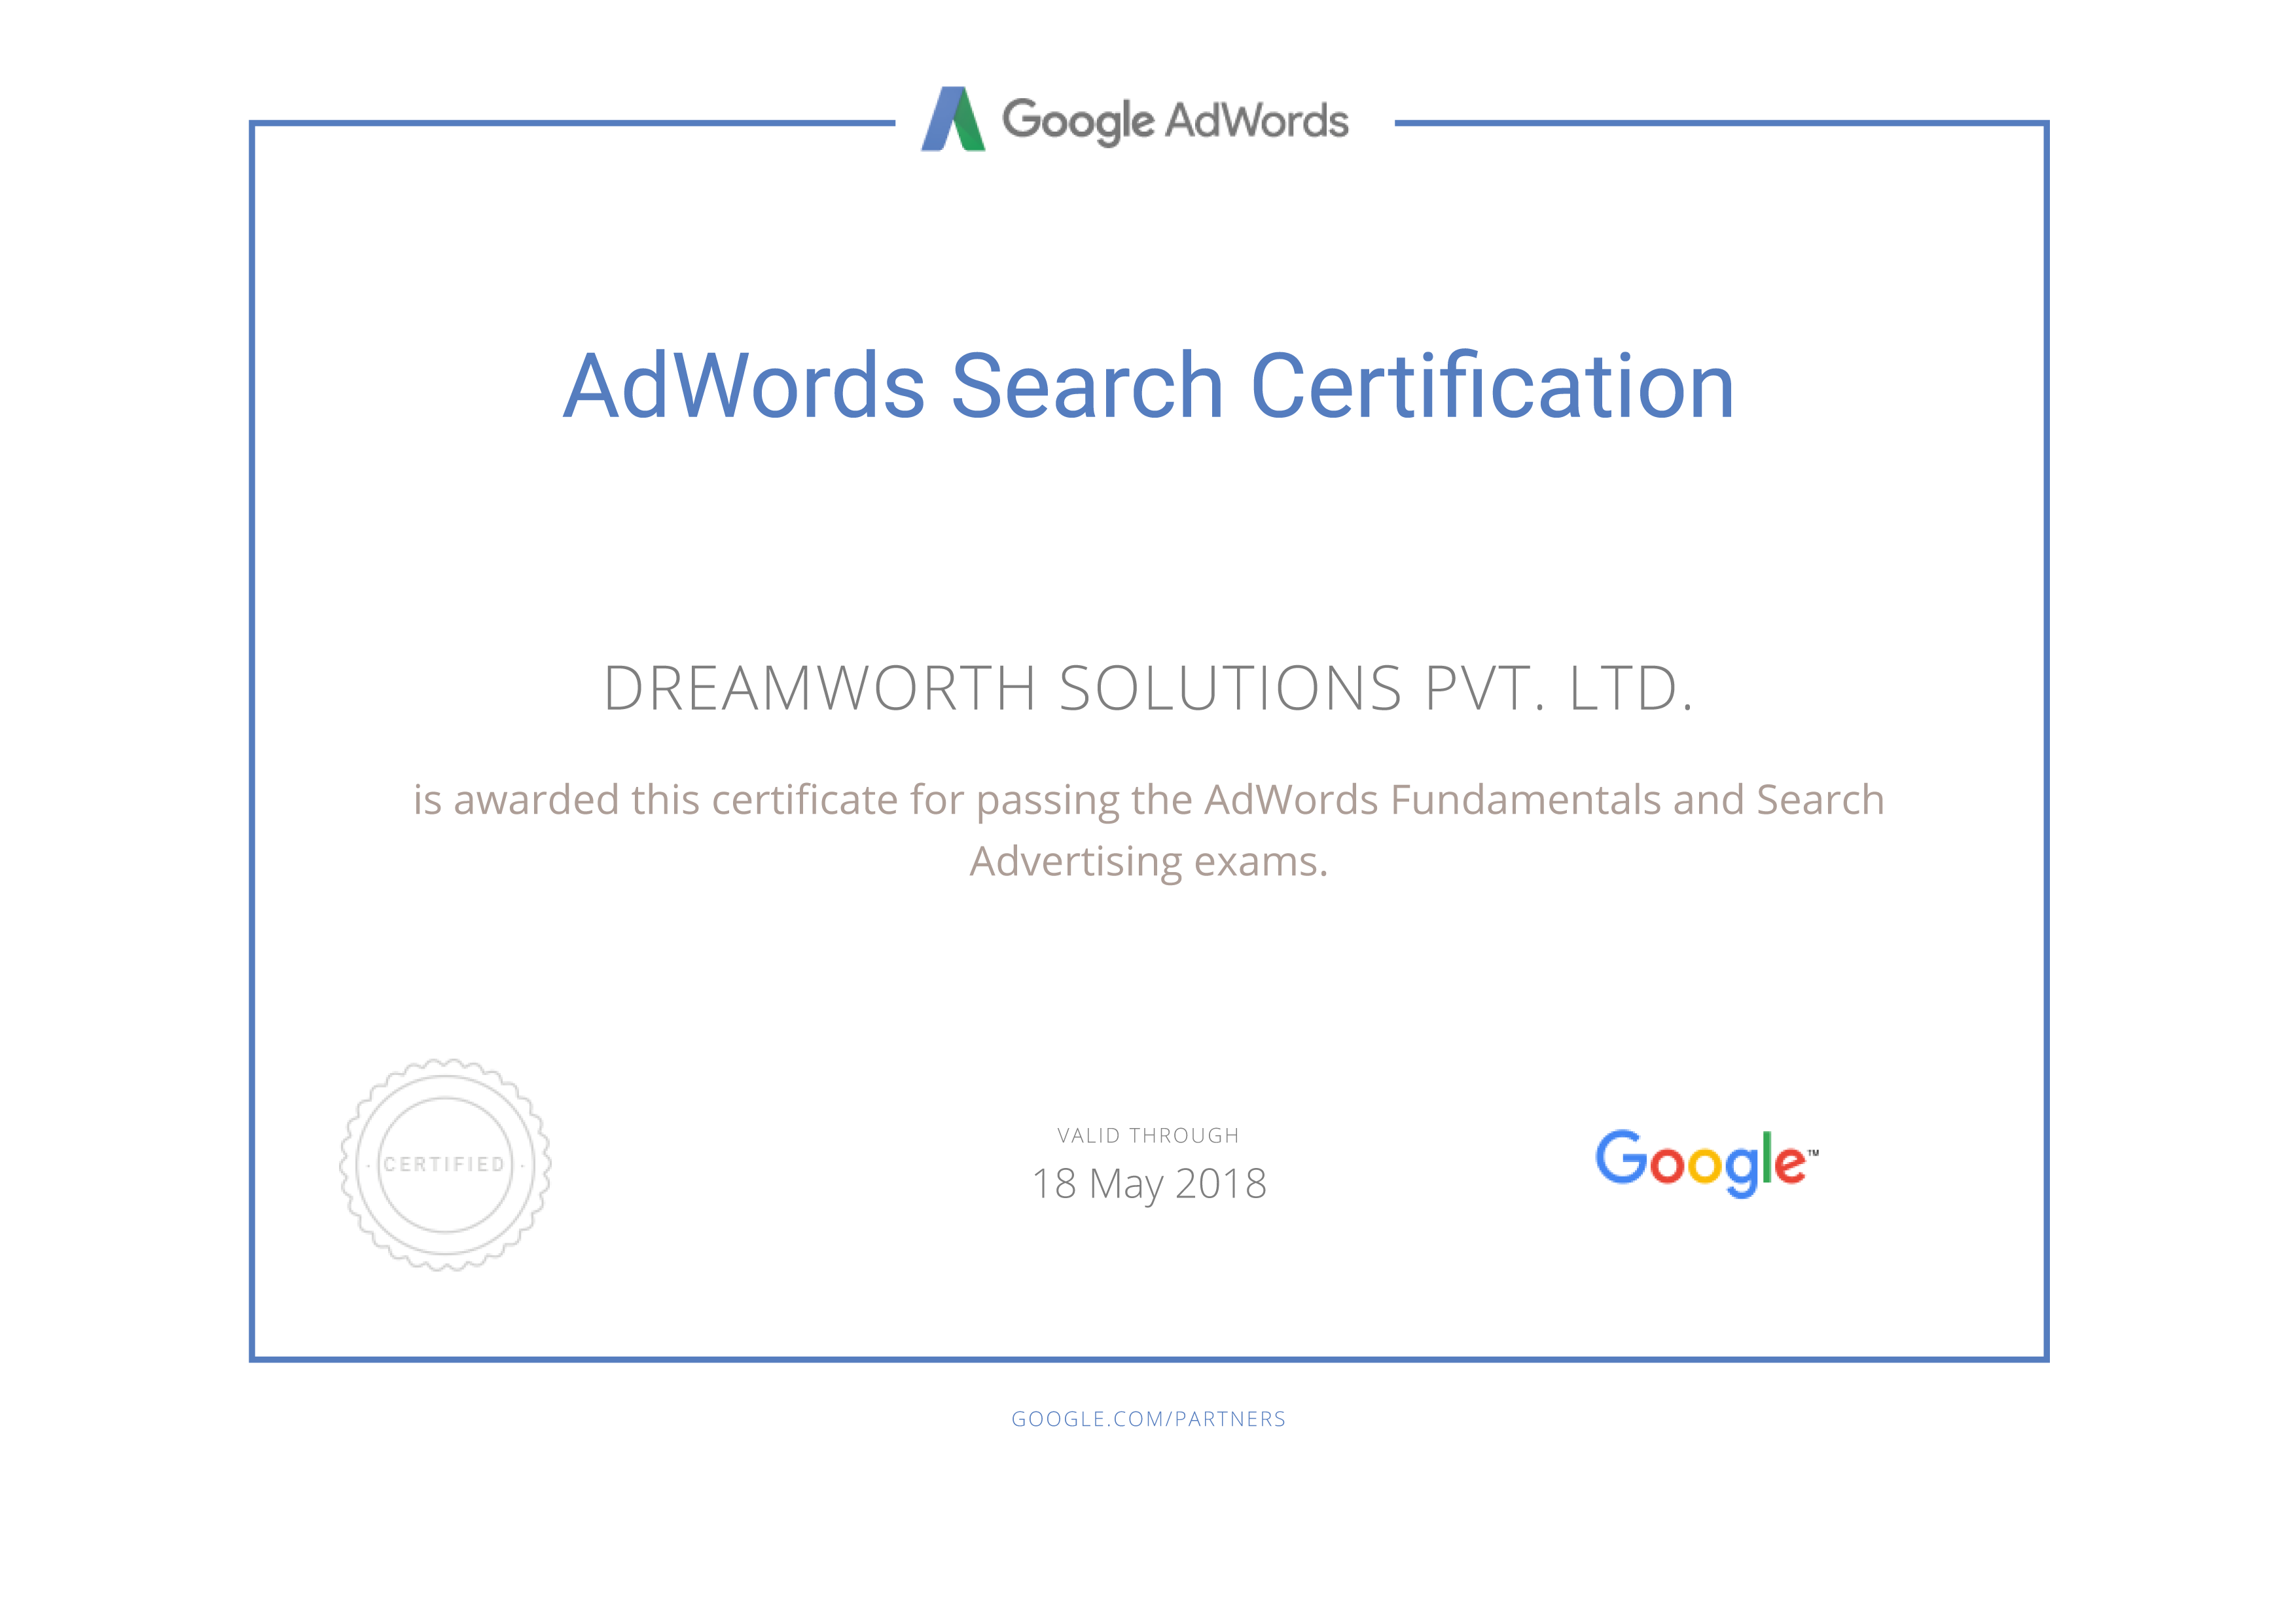 Dreamworth is the best digital marketing companies pune offering the advanced seo services in India